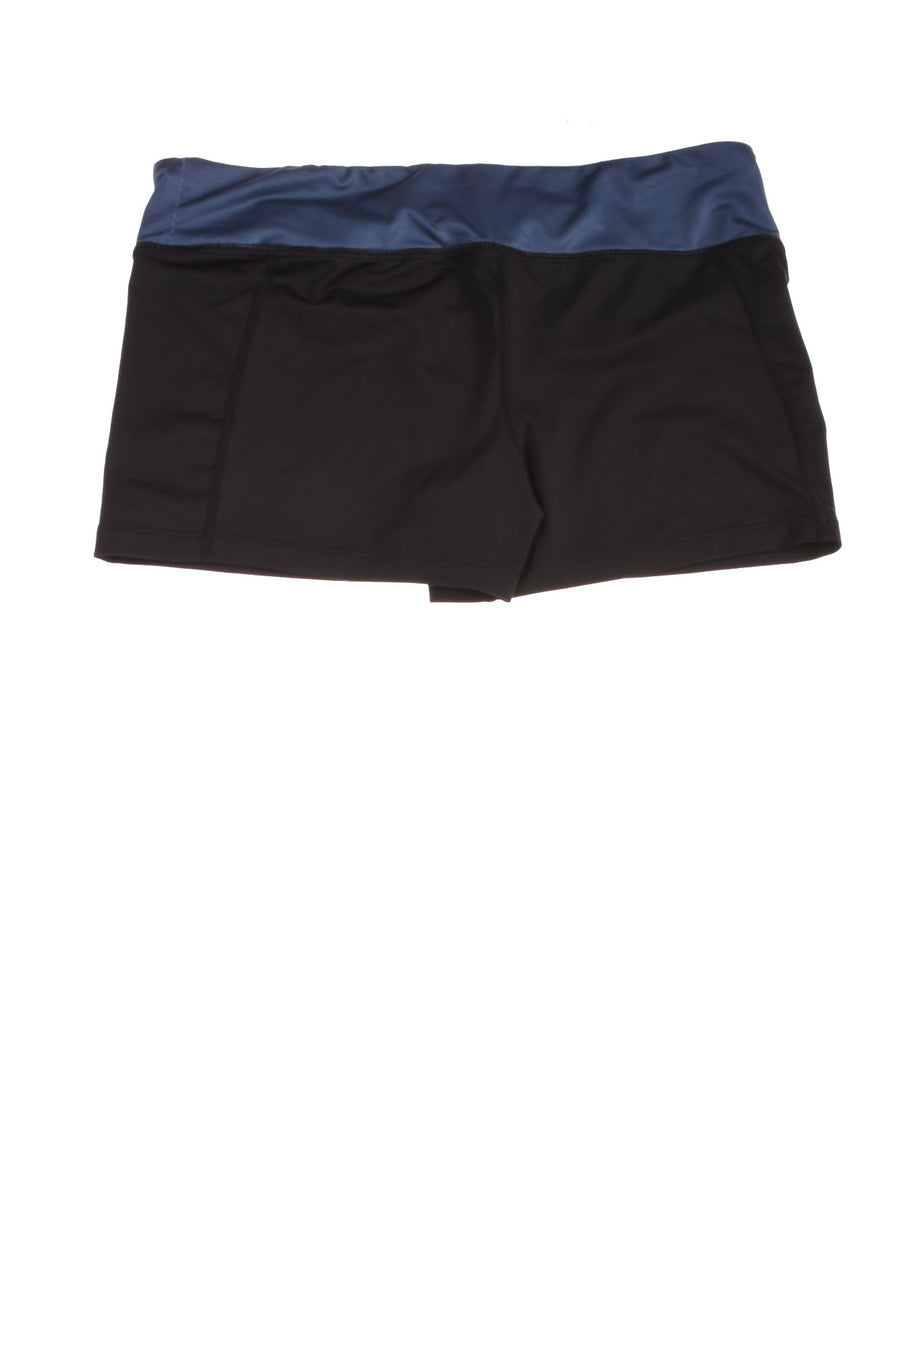 Women's University Of Akron Shorts By Under Armour